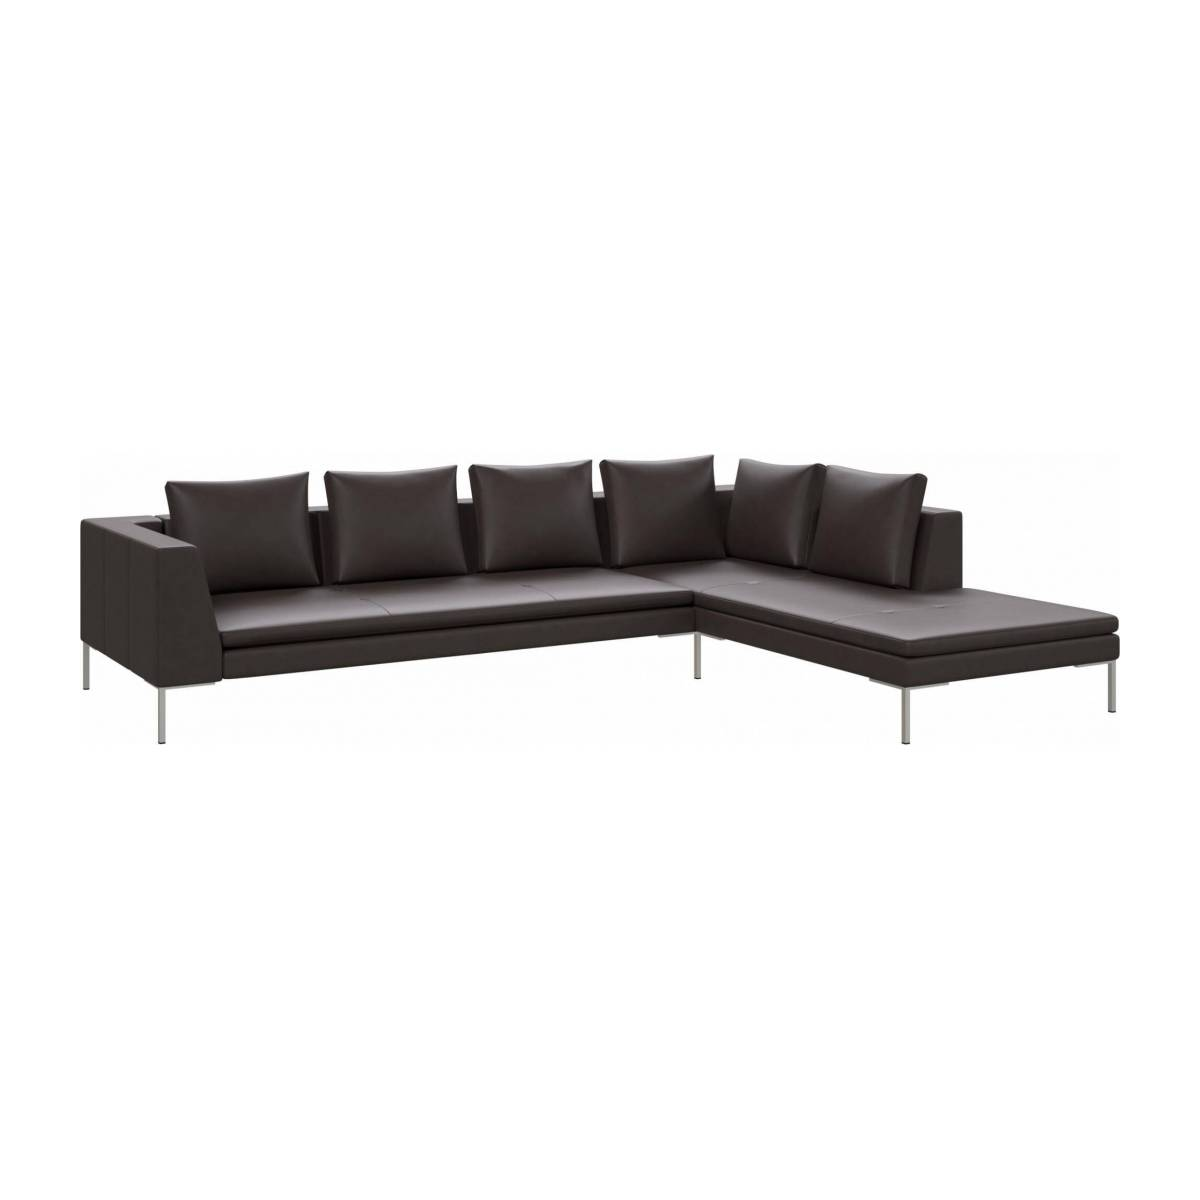 3 seater sofa with chaise longue on the right in Savoy semi-aniline leather, dark brown amaretto  n°2